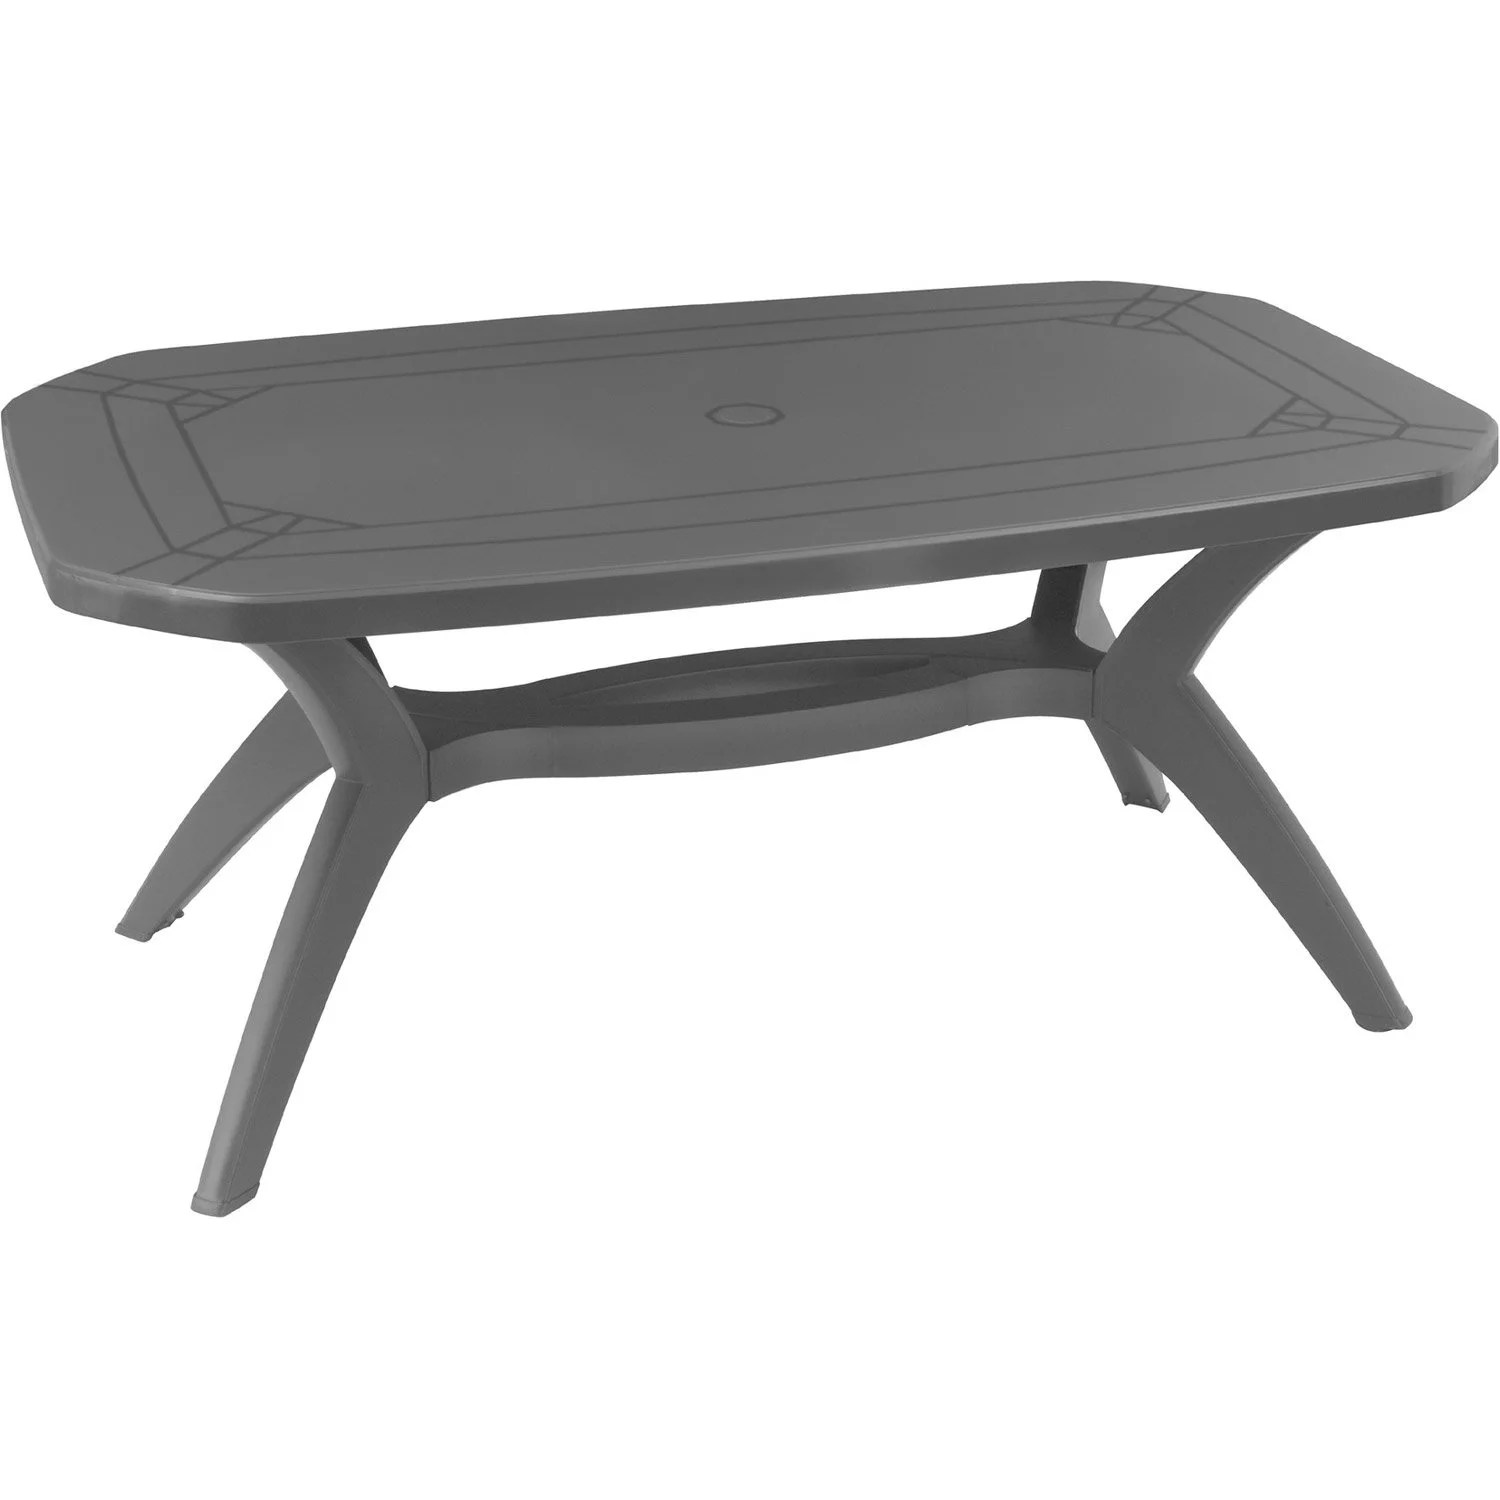 Table De Jardin Plastique La Redoute | La Table De Jardin Ou Table ...